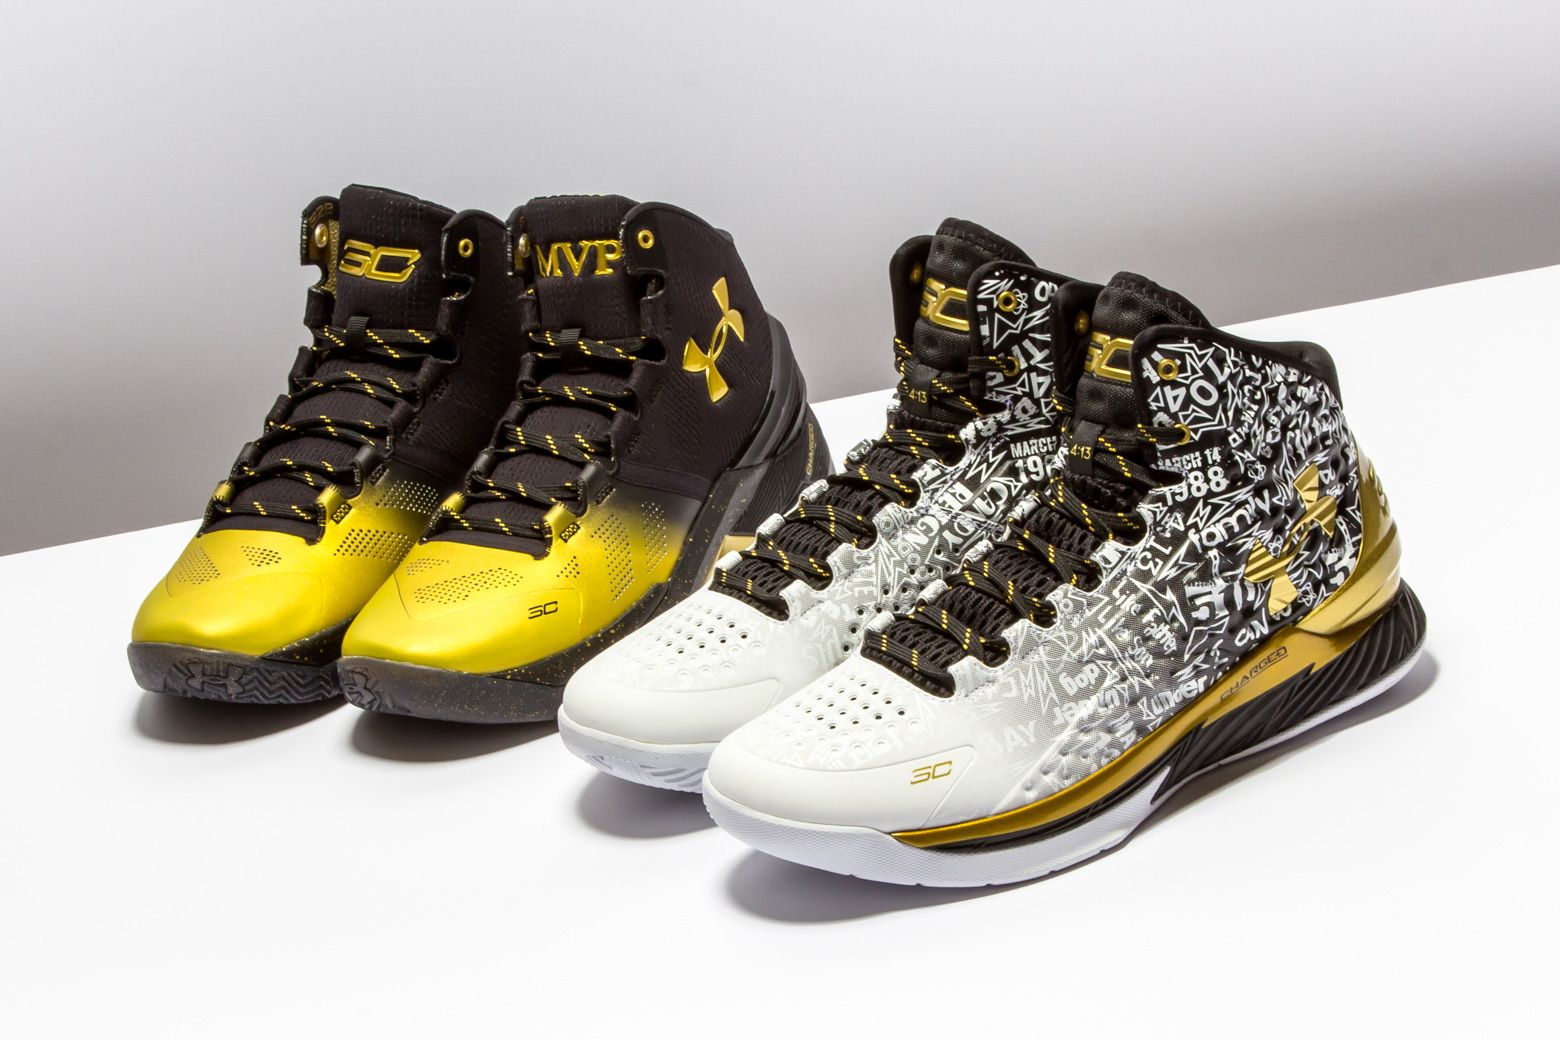 48631a551a85 Under Armour dropped this two-shoe pack to commemorate Stephen Curry s back -to-back NBA MVPs.